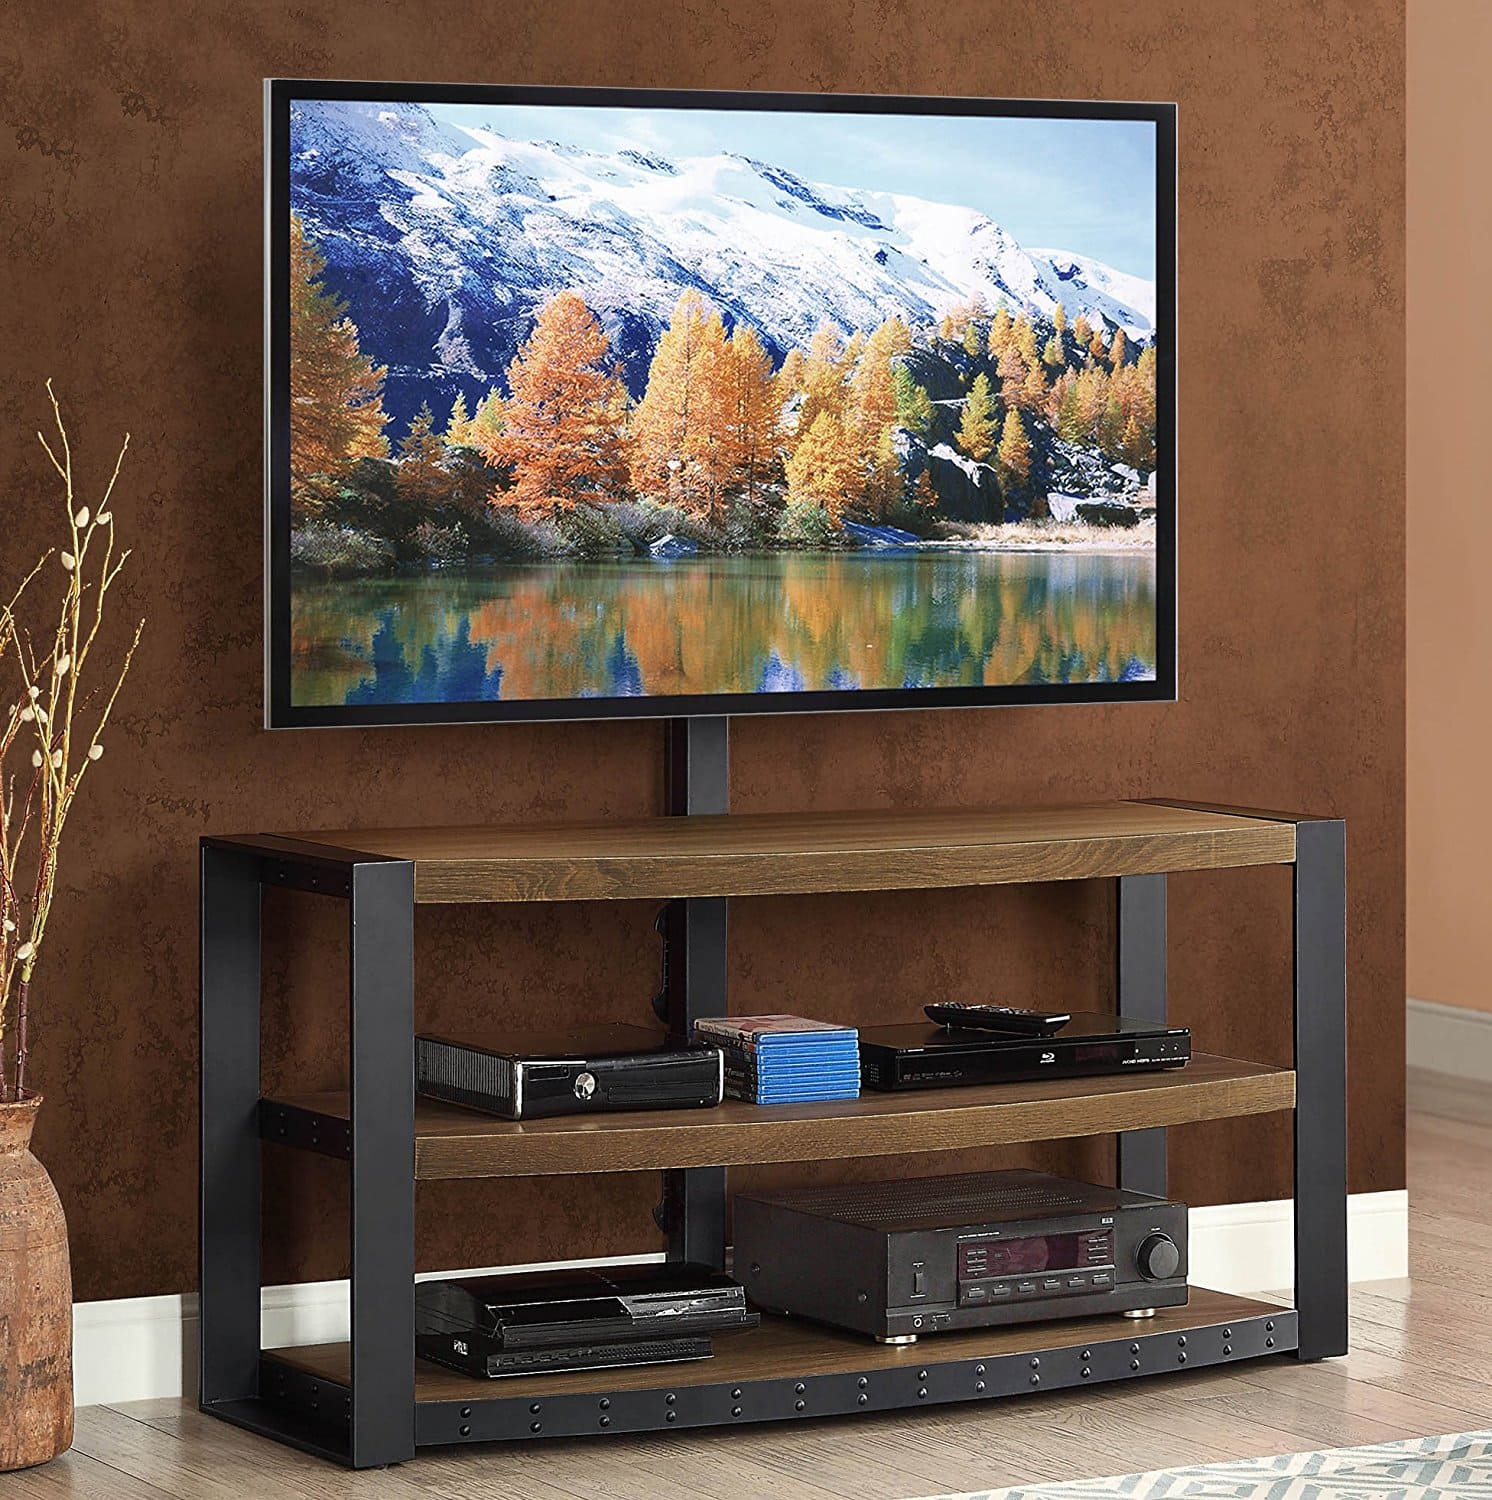 Whalen Santa Fe 3 In 1 Tv Stand Up To 65 Slickdeals Net